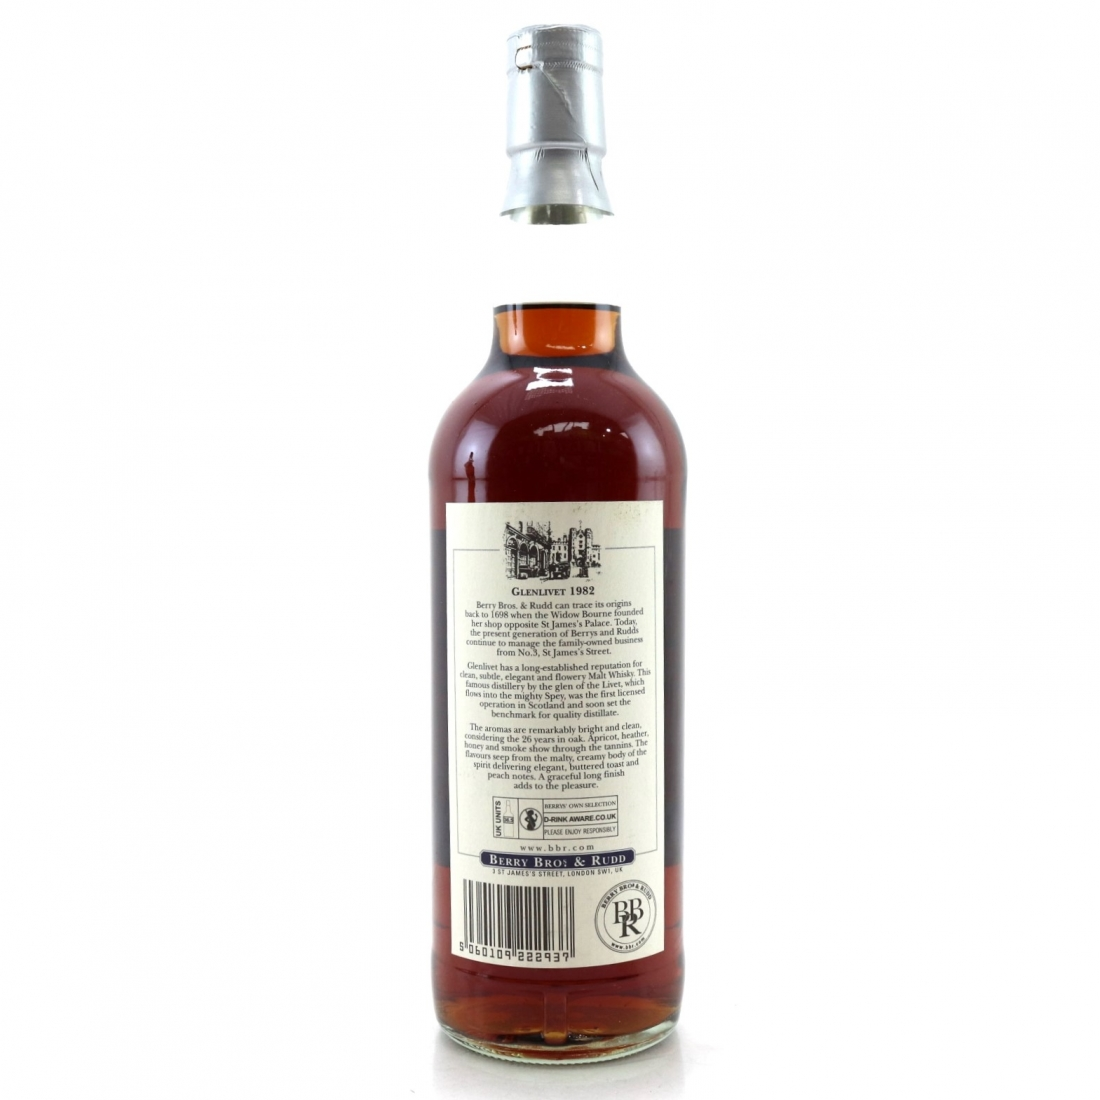 Glenlivet 1982 Berry Brothers and Rudd 26 Year Old / German Exclusive